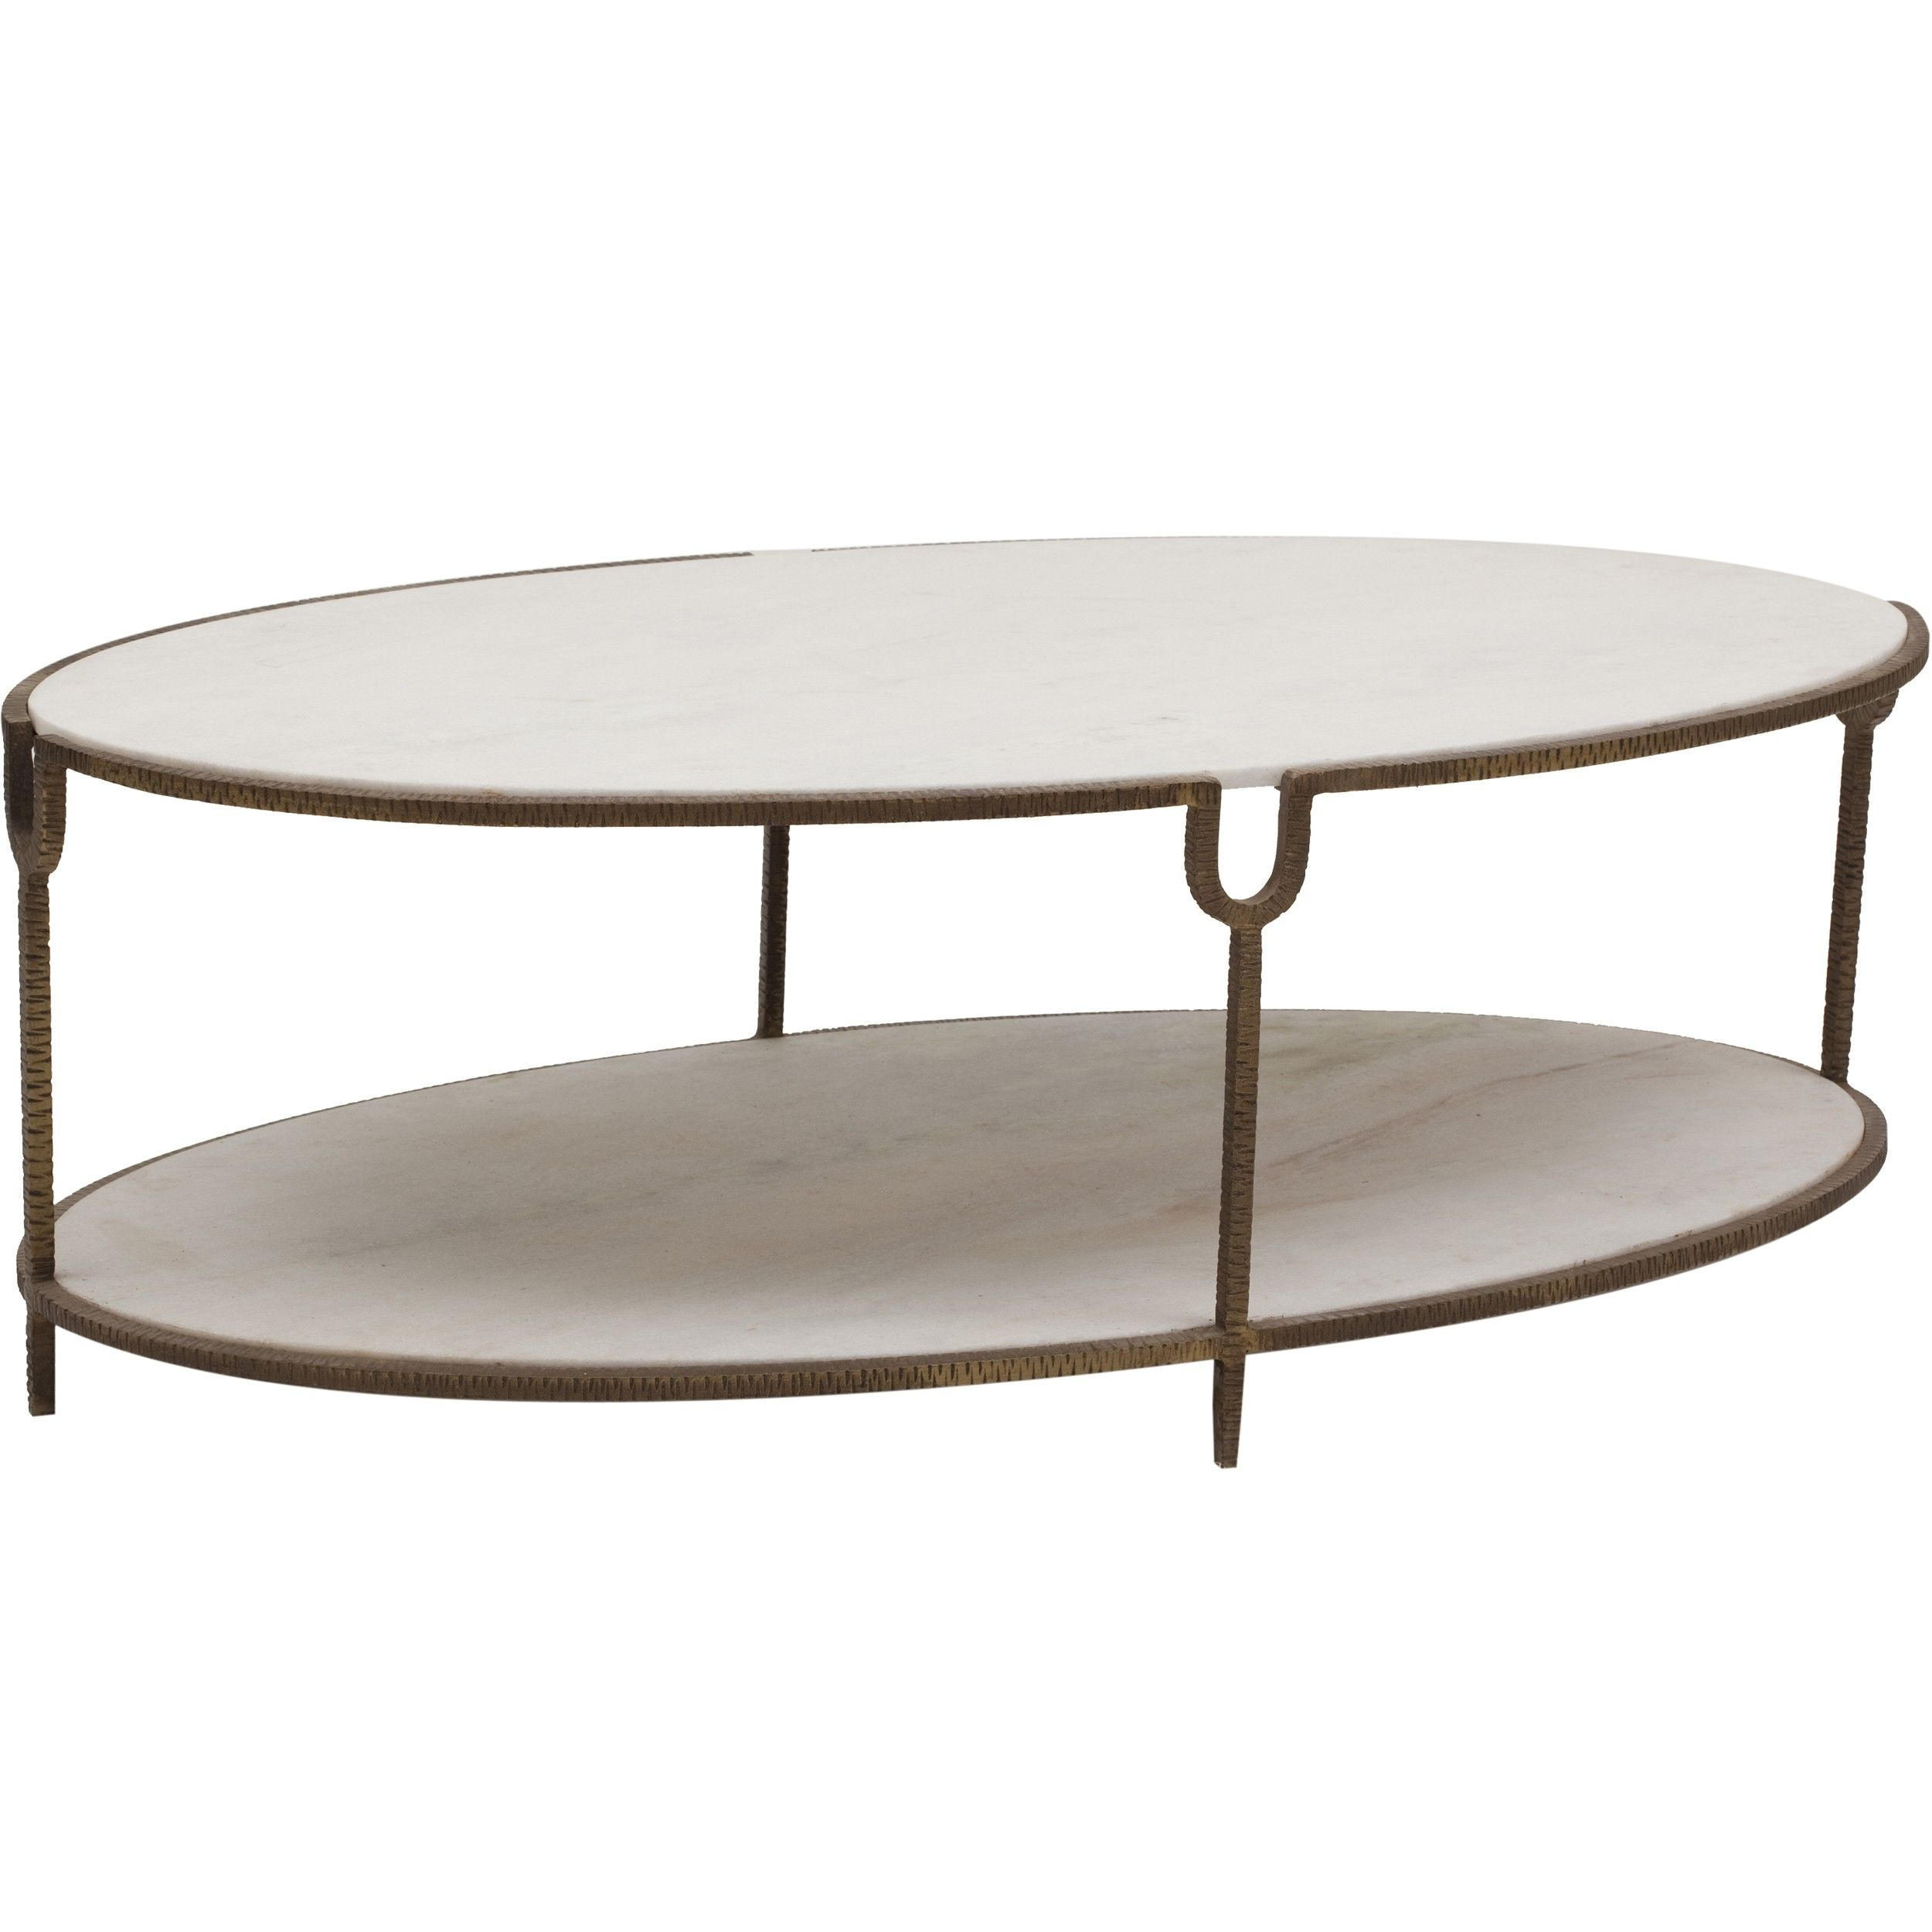 Iron And Stone Oval Coffee Table - Furniture - Accent Tables - Coffee Tables - Best  sc 1 st  Pinterest & Iron And Stone Oval Coffee Table - Furniture - Accent Tables ...